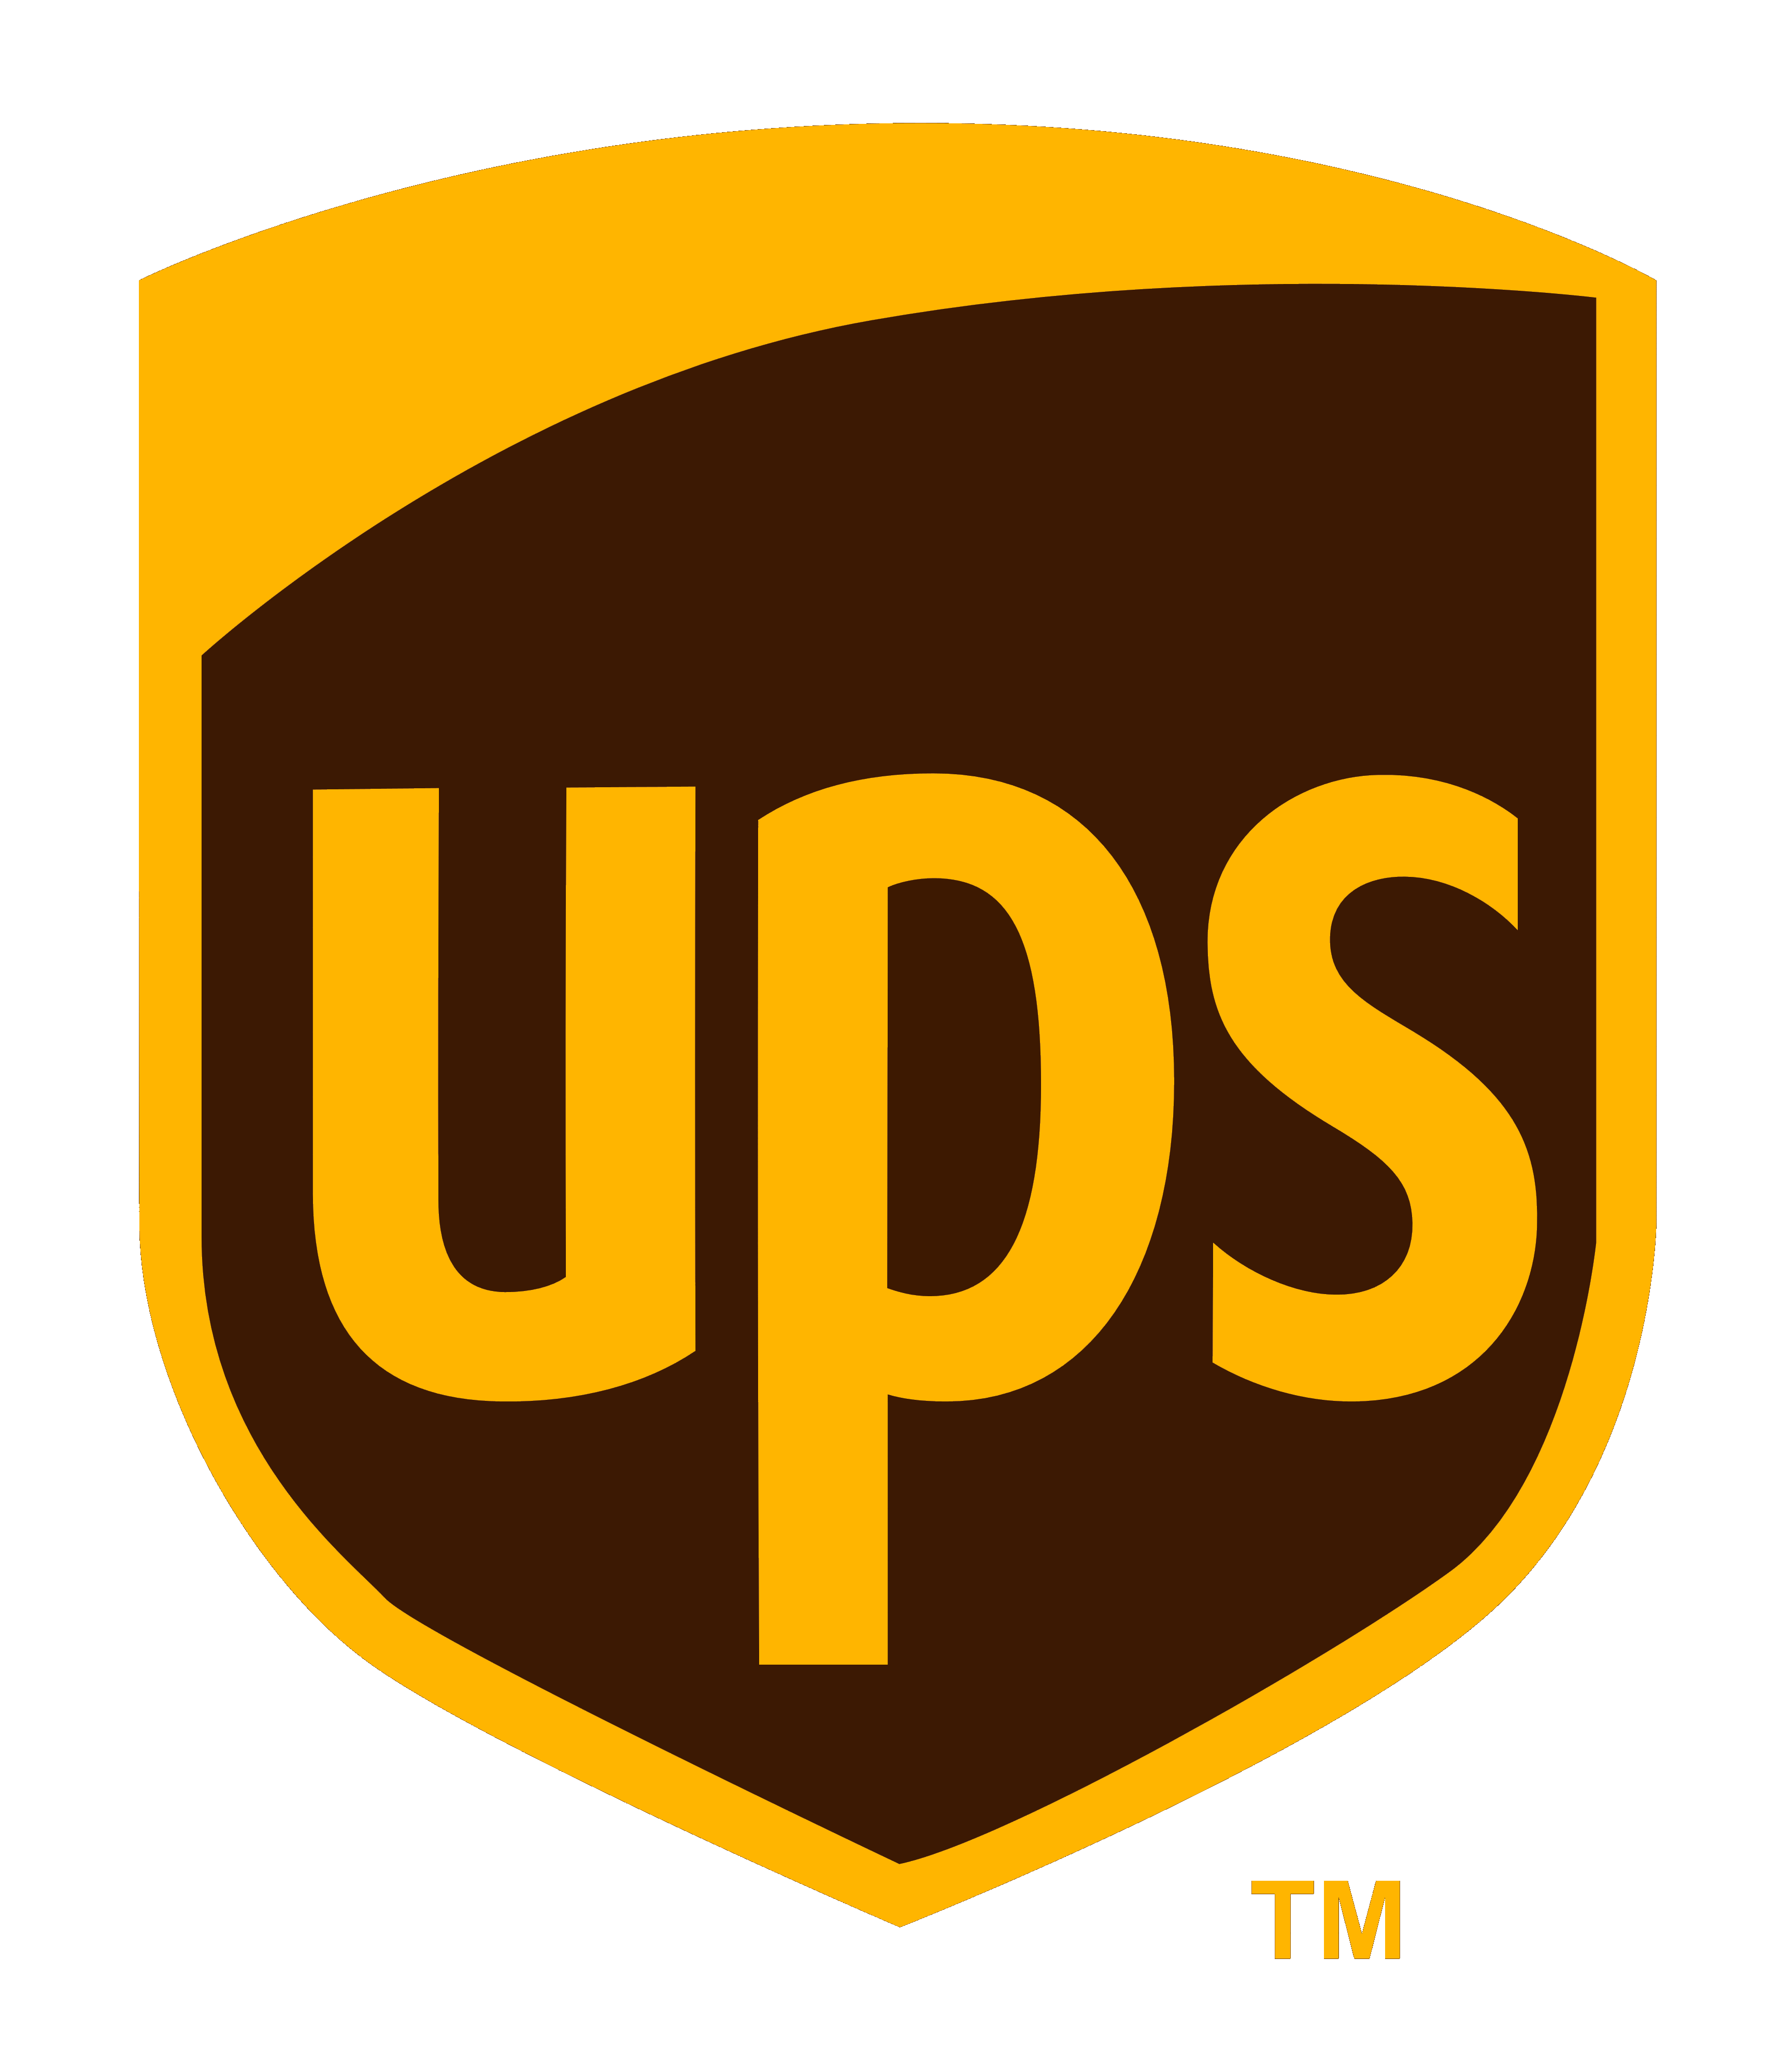 Ups shipping coupon staples